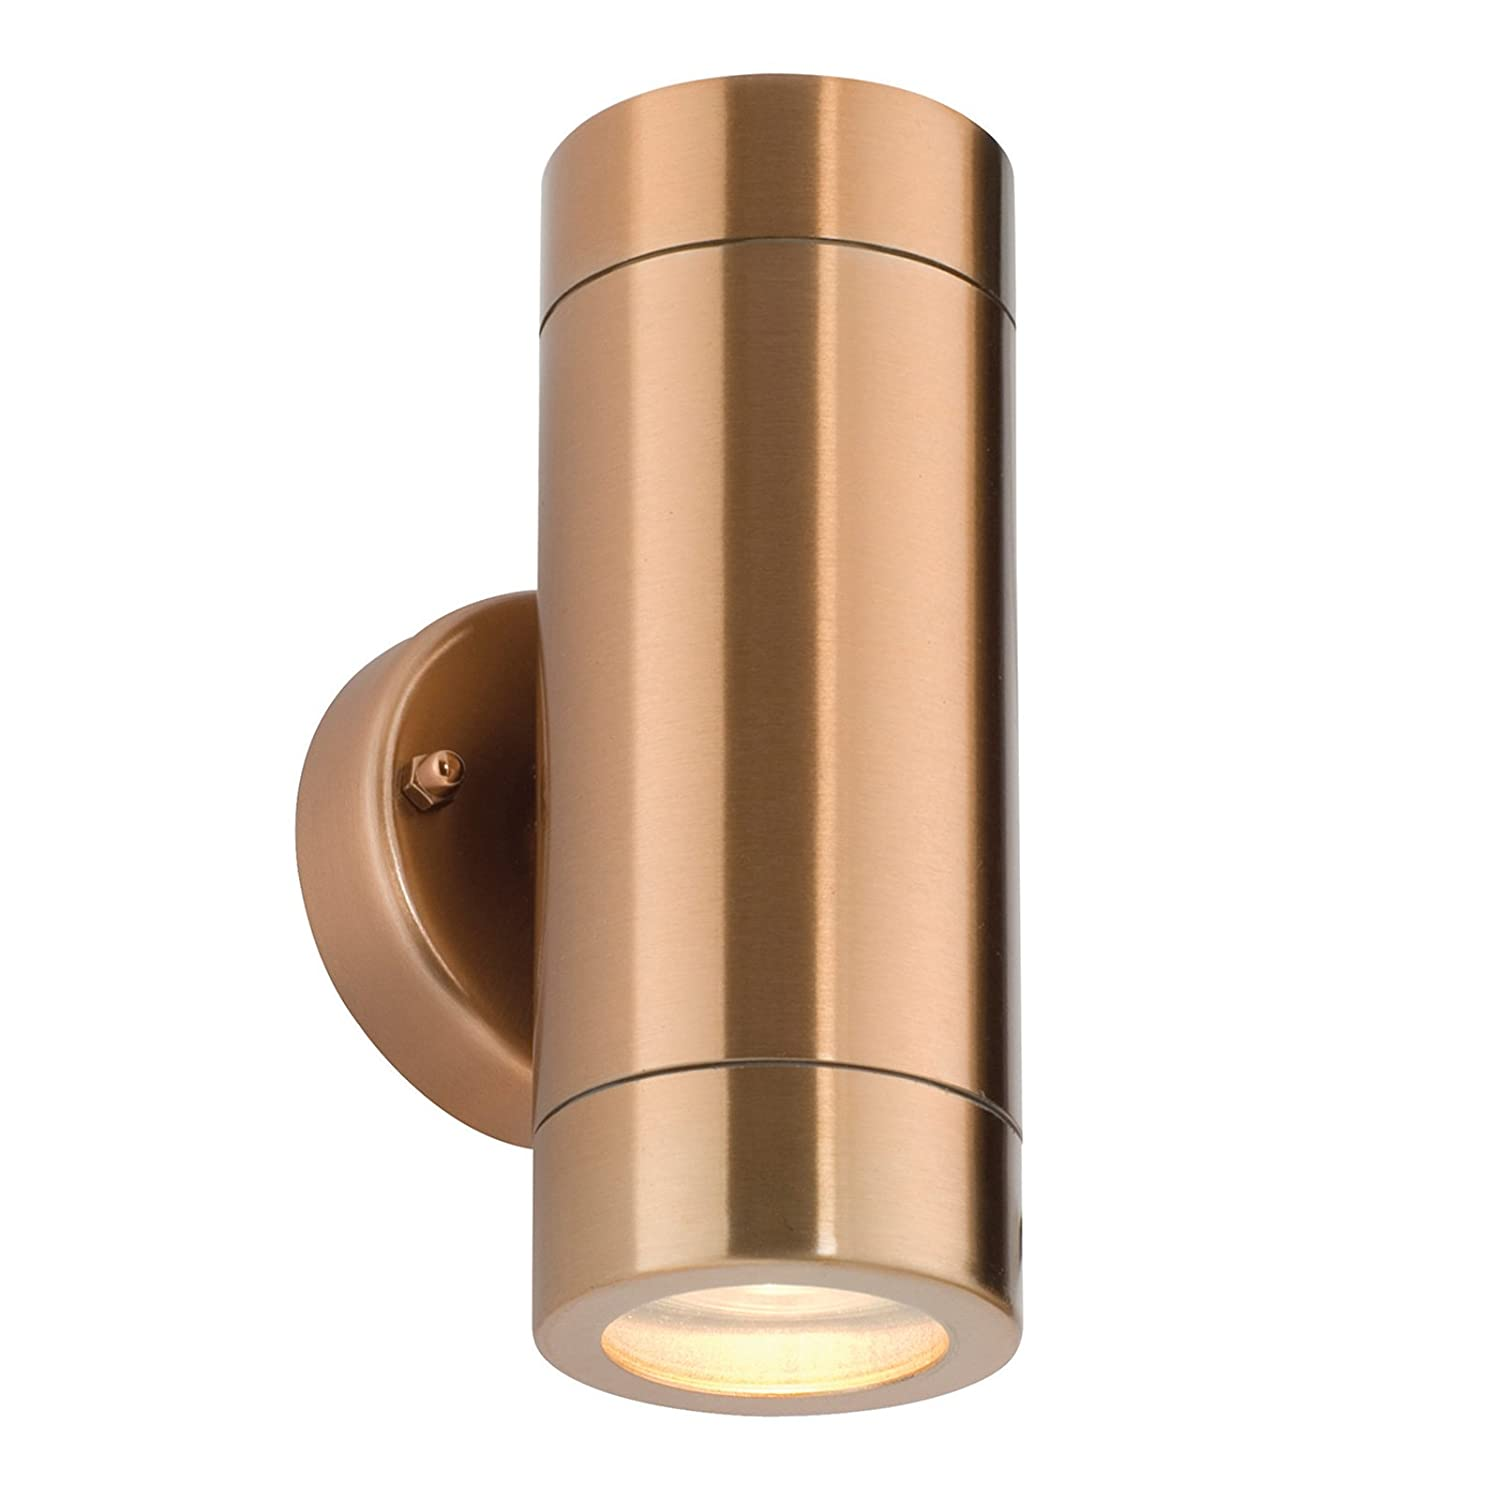 Saxby odyssey 35w twin copper ip44 outdoor up down wall light saxby odyssey 35w twin copper ip44 outdoor up down wall light amazon lighting aloadofball Gallery